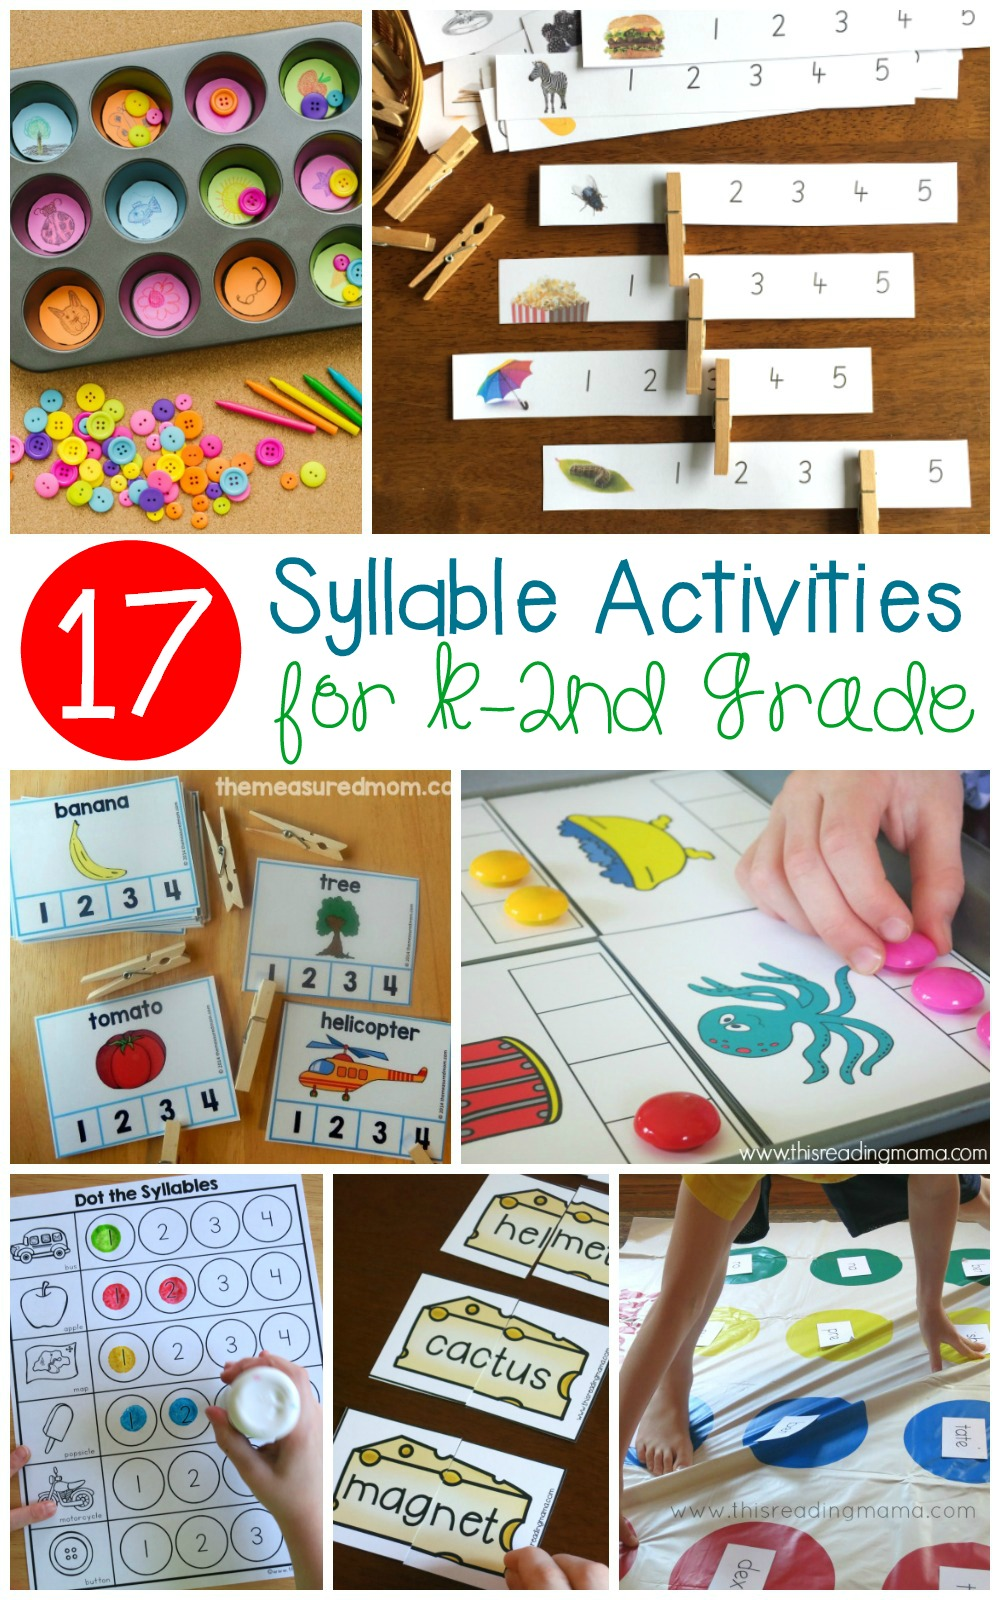 Learning the number of syllables in a word is an important skill for early readers. Make learning fun with these creative and hands-on syllable activities!